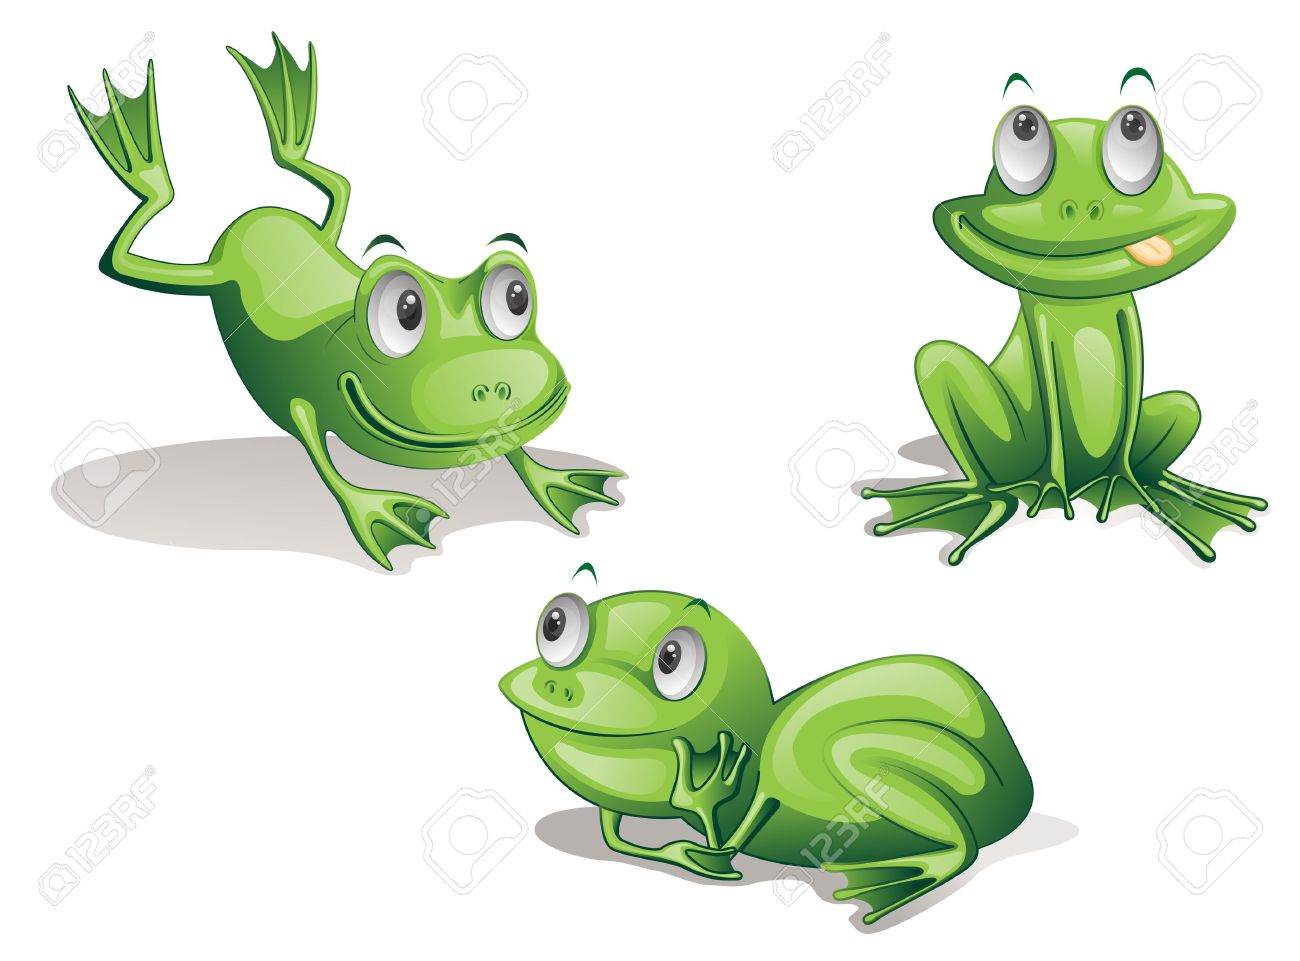 Symmetry clipart frog hopping 24 images on 13215985 of